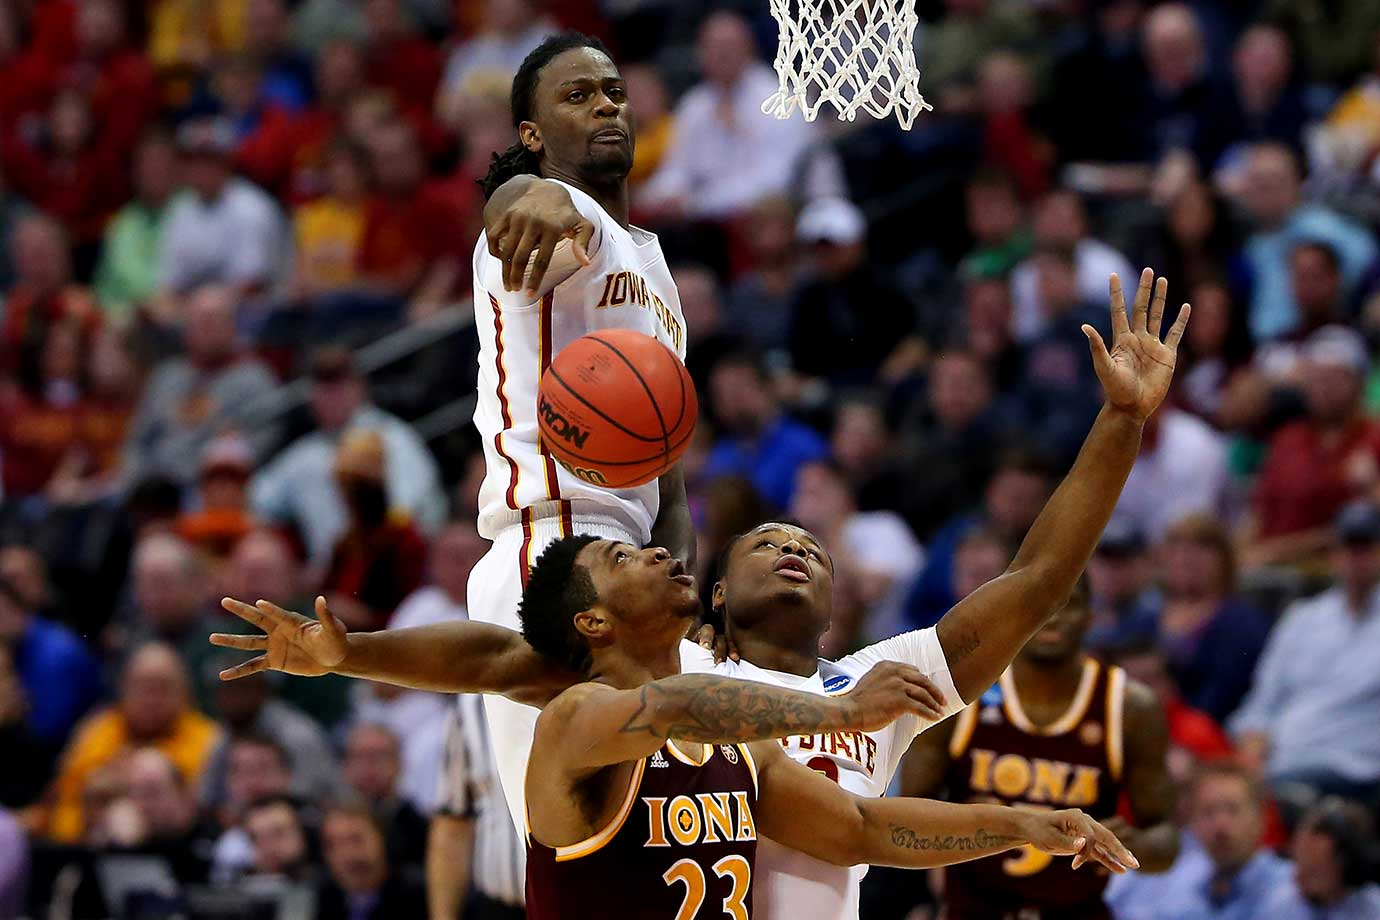 Jameel McKay of Iowa State blocks a shot by Jordan Washington of Iona.